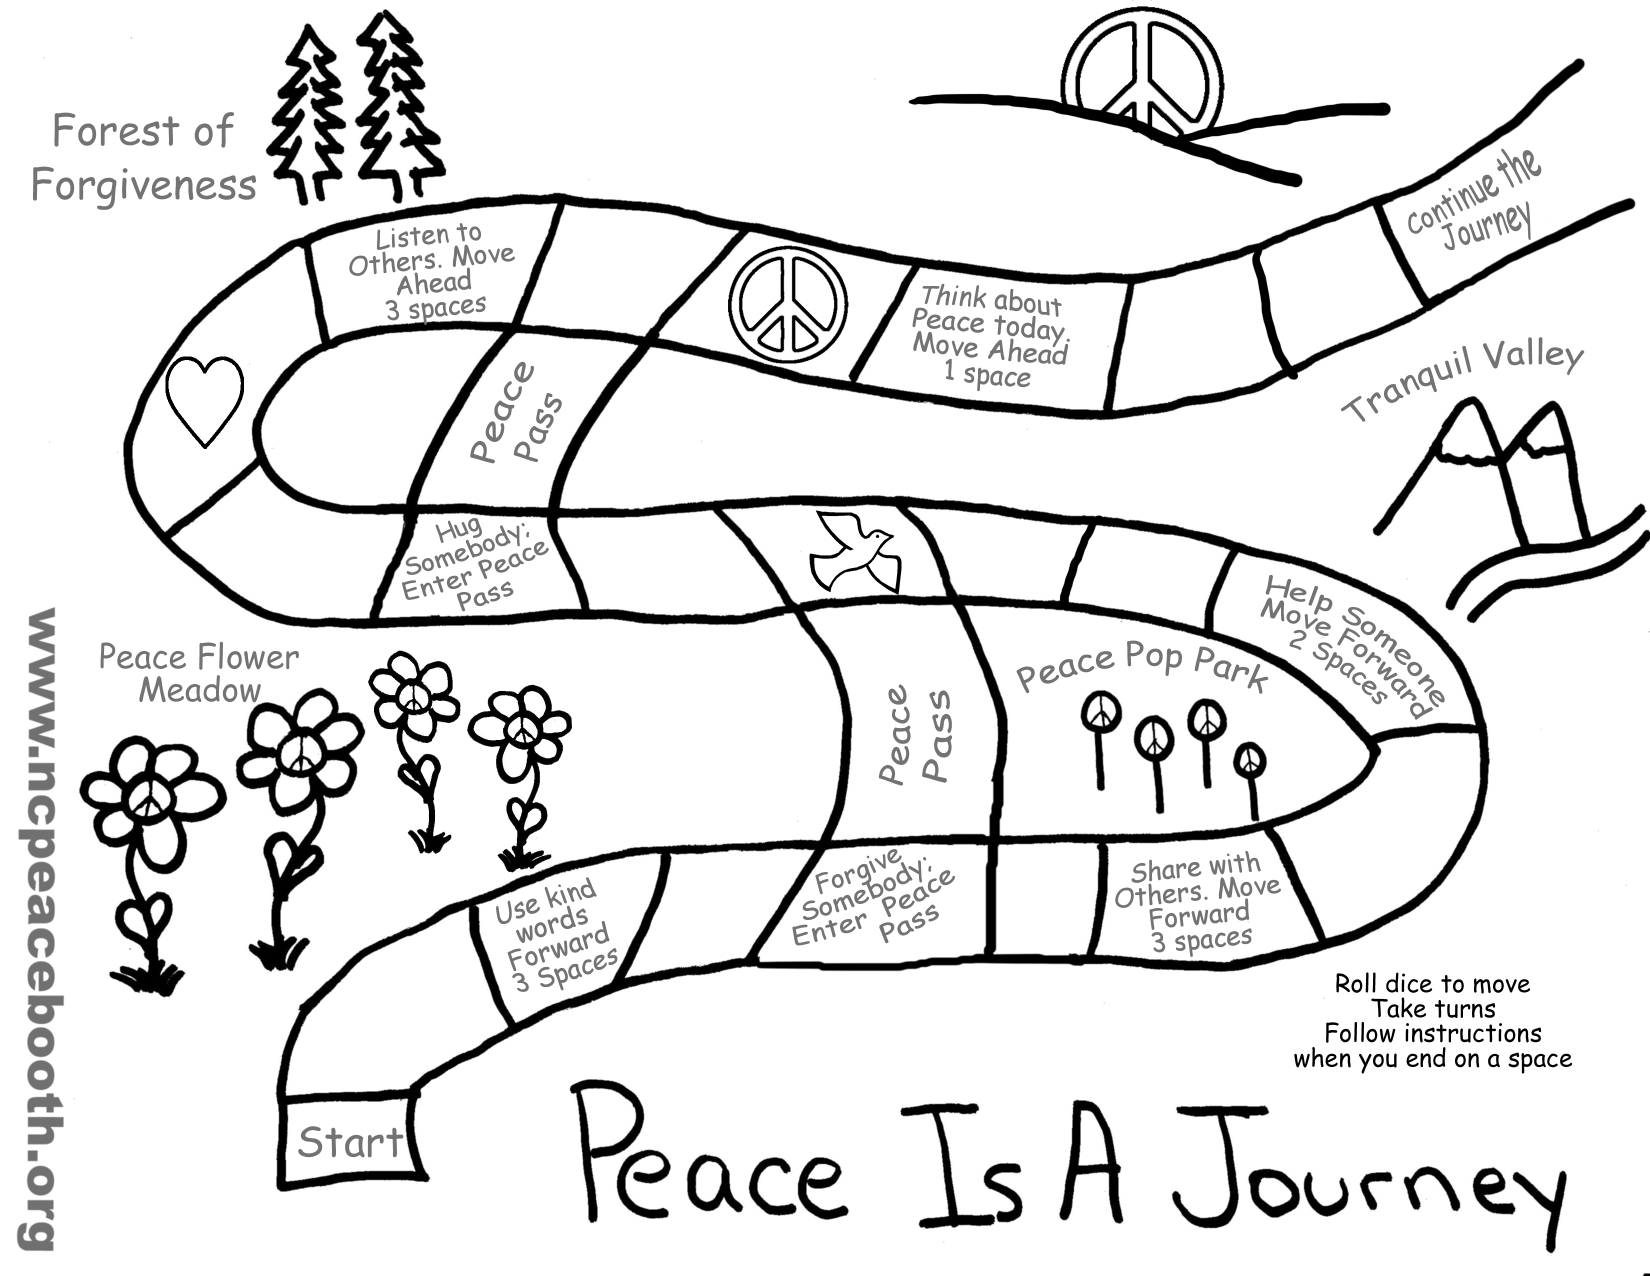 Download The Peace Is A Journey Coloring Sheet Game